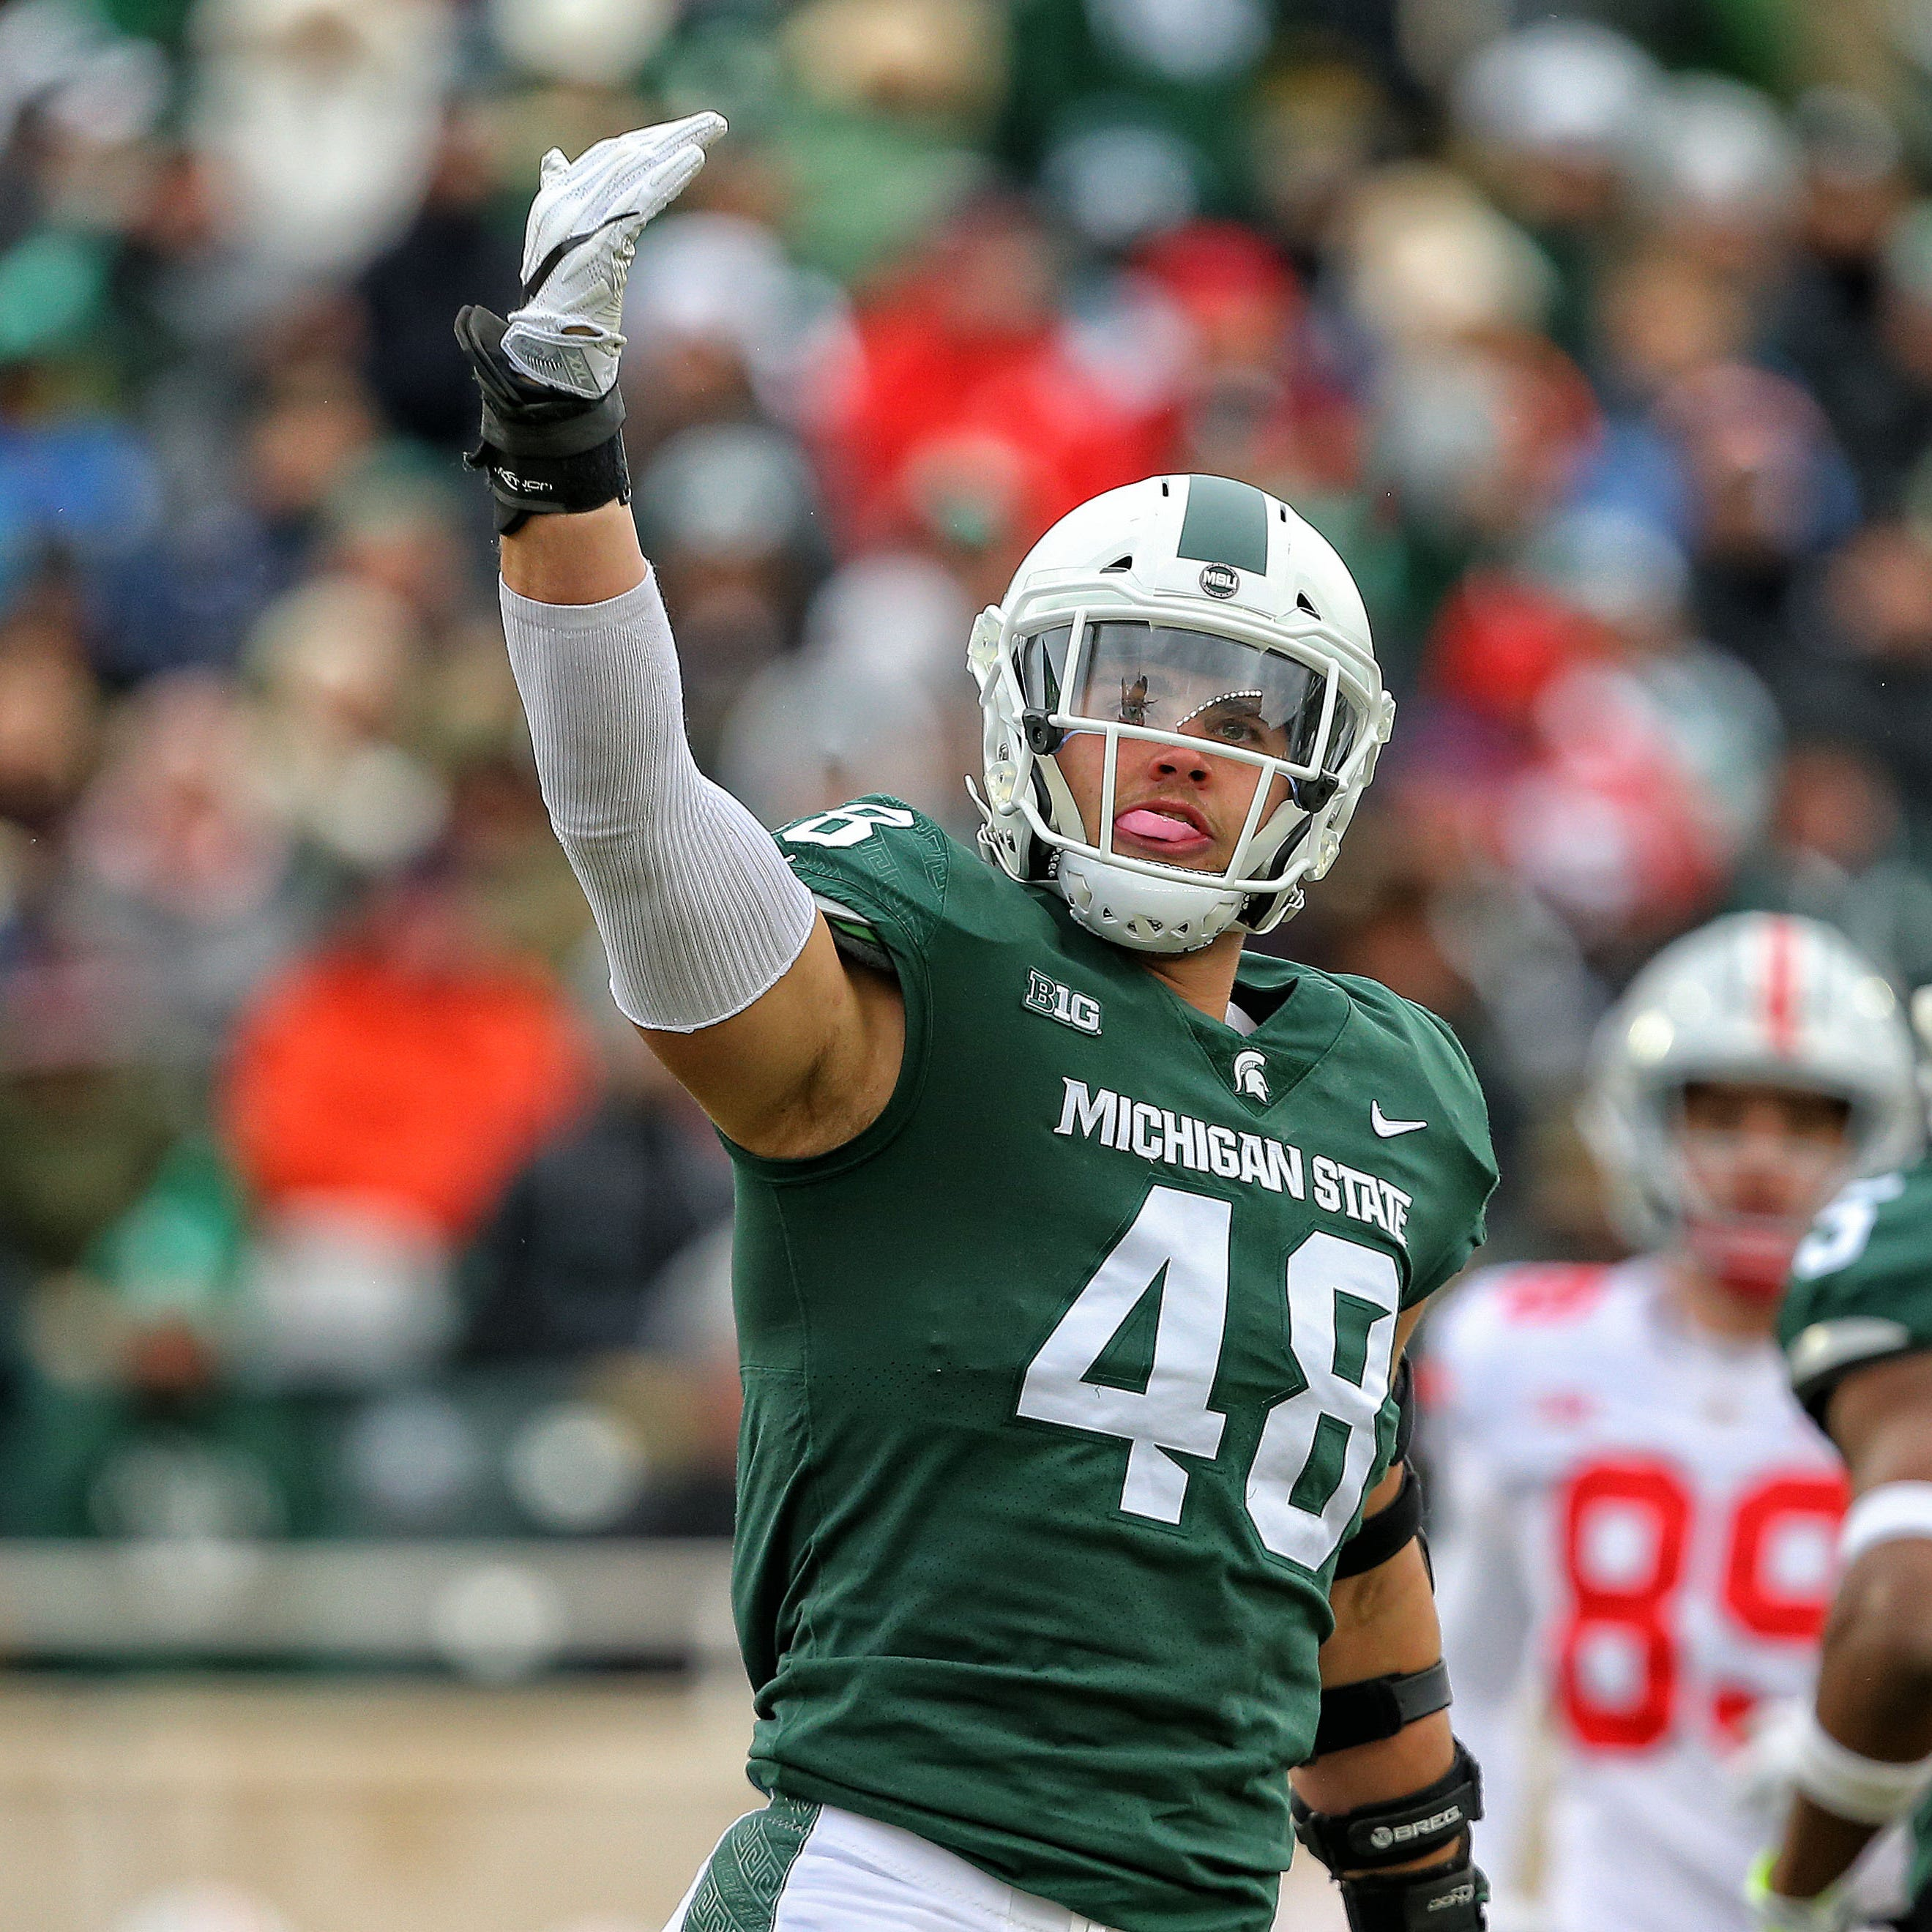 Michigan State's Kenny Willekes (leg) expected to miss spring practice